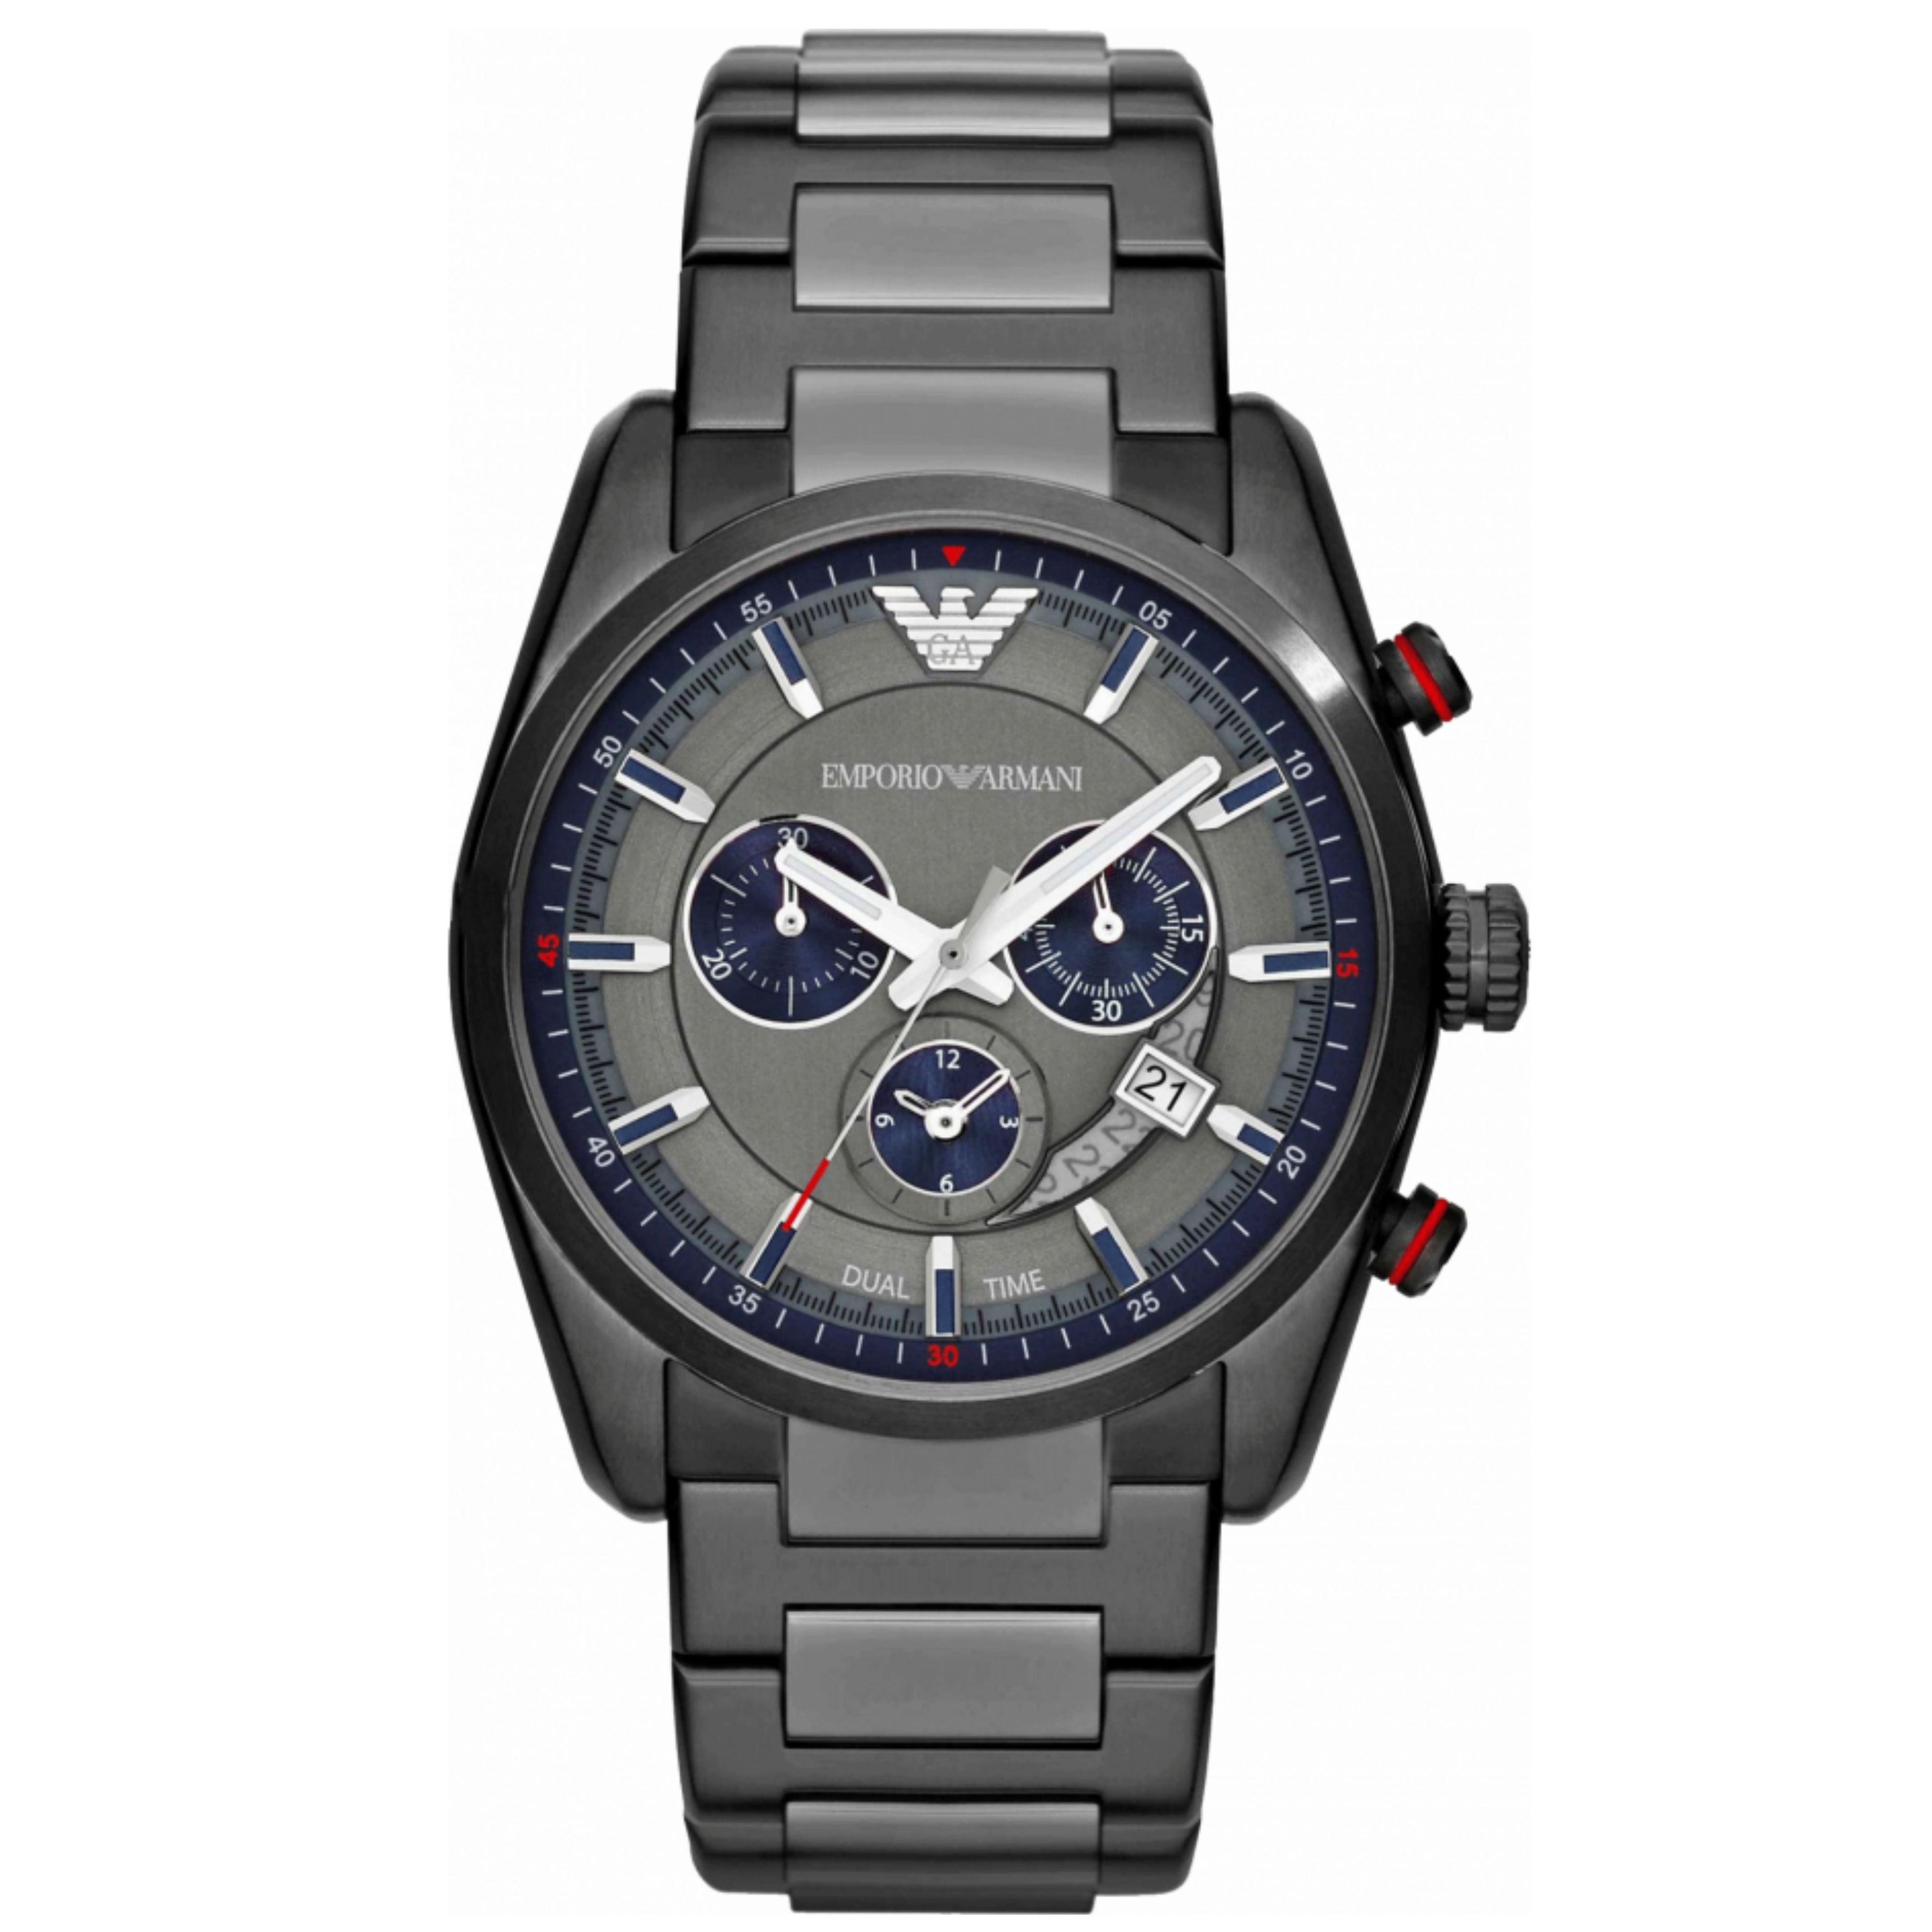 Emporio Armani Sportivo Gent's Stainless Steel Chronograph Round Watch AR6037